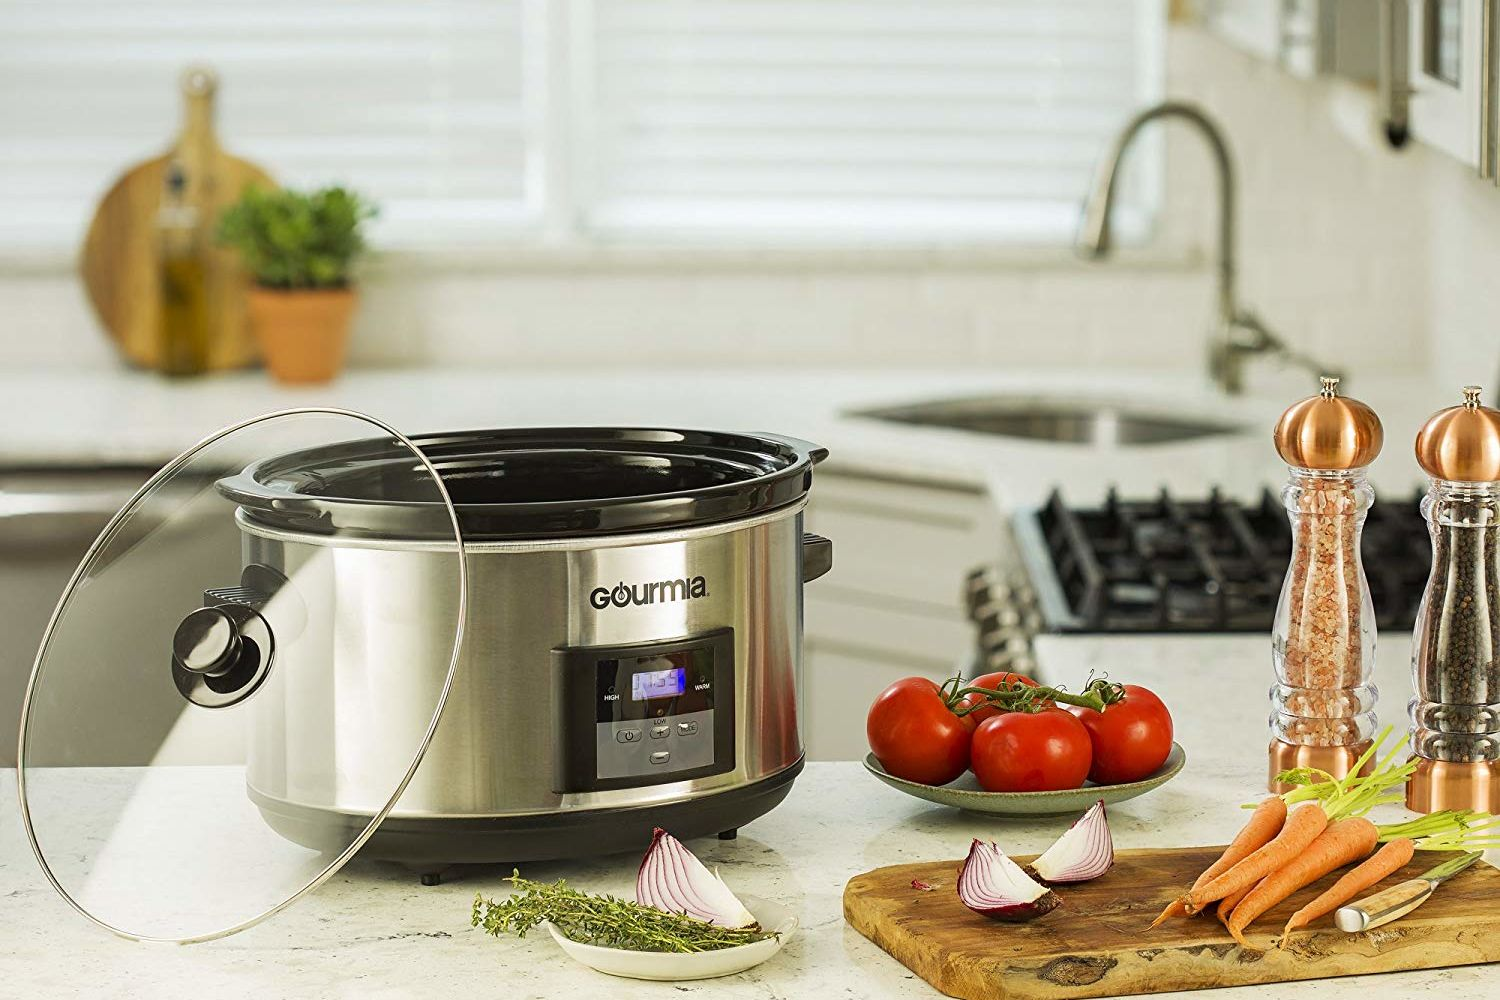 Did You Know Your Slow-Cooker Can Clean Itself?